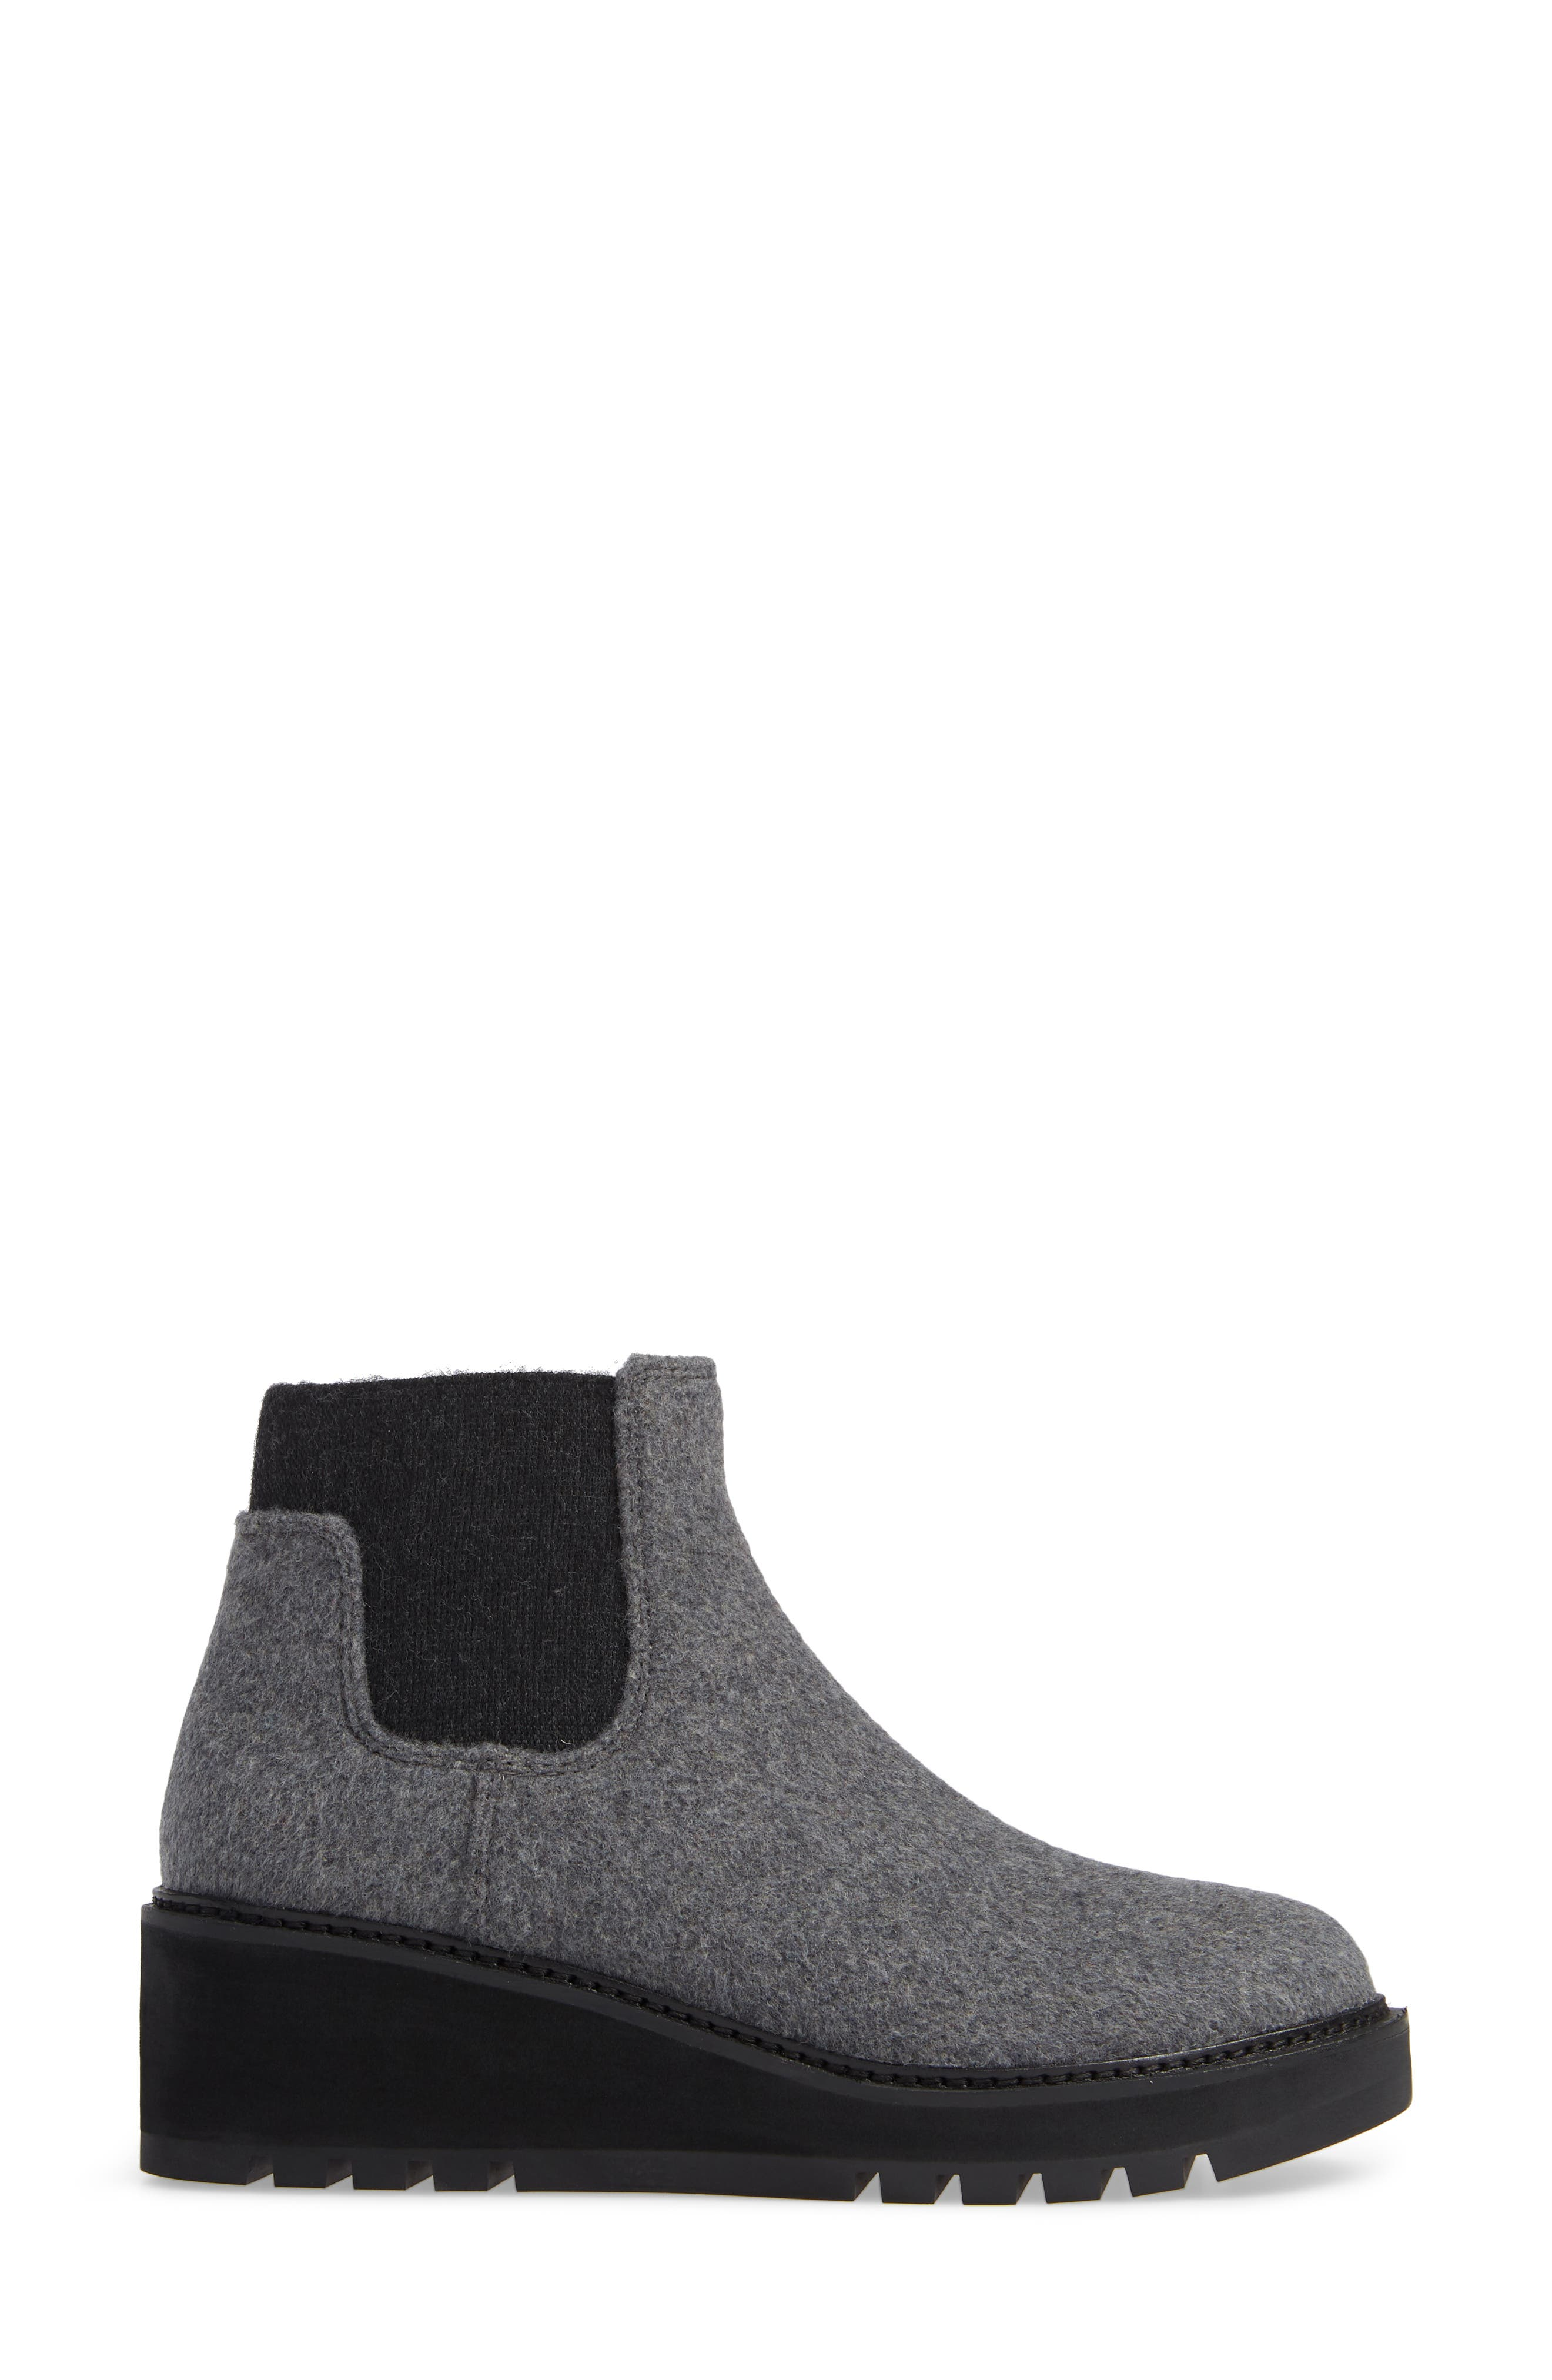 Wedge Chelsea Bootie,                             Alternate thumbnail 3, color,                             CHARCOAL FABRIC